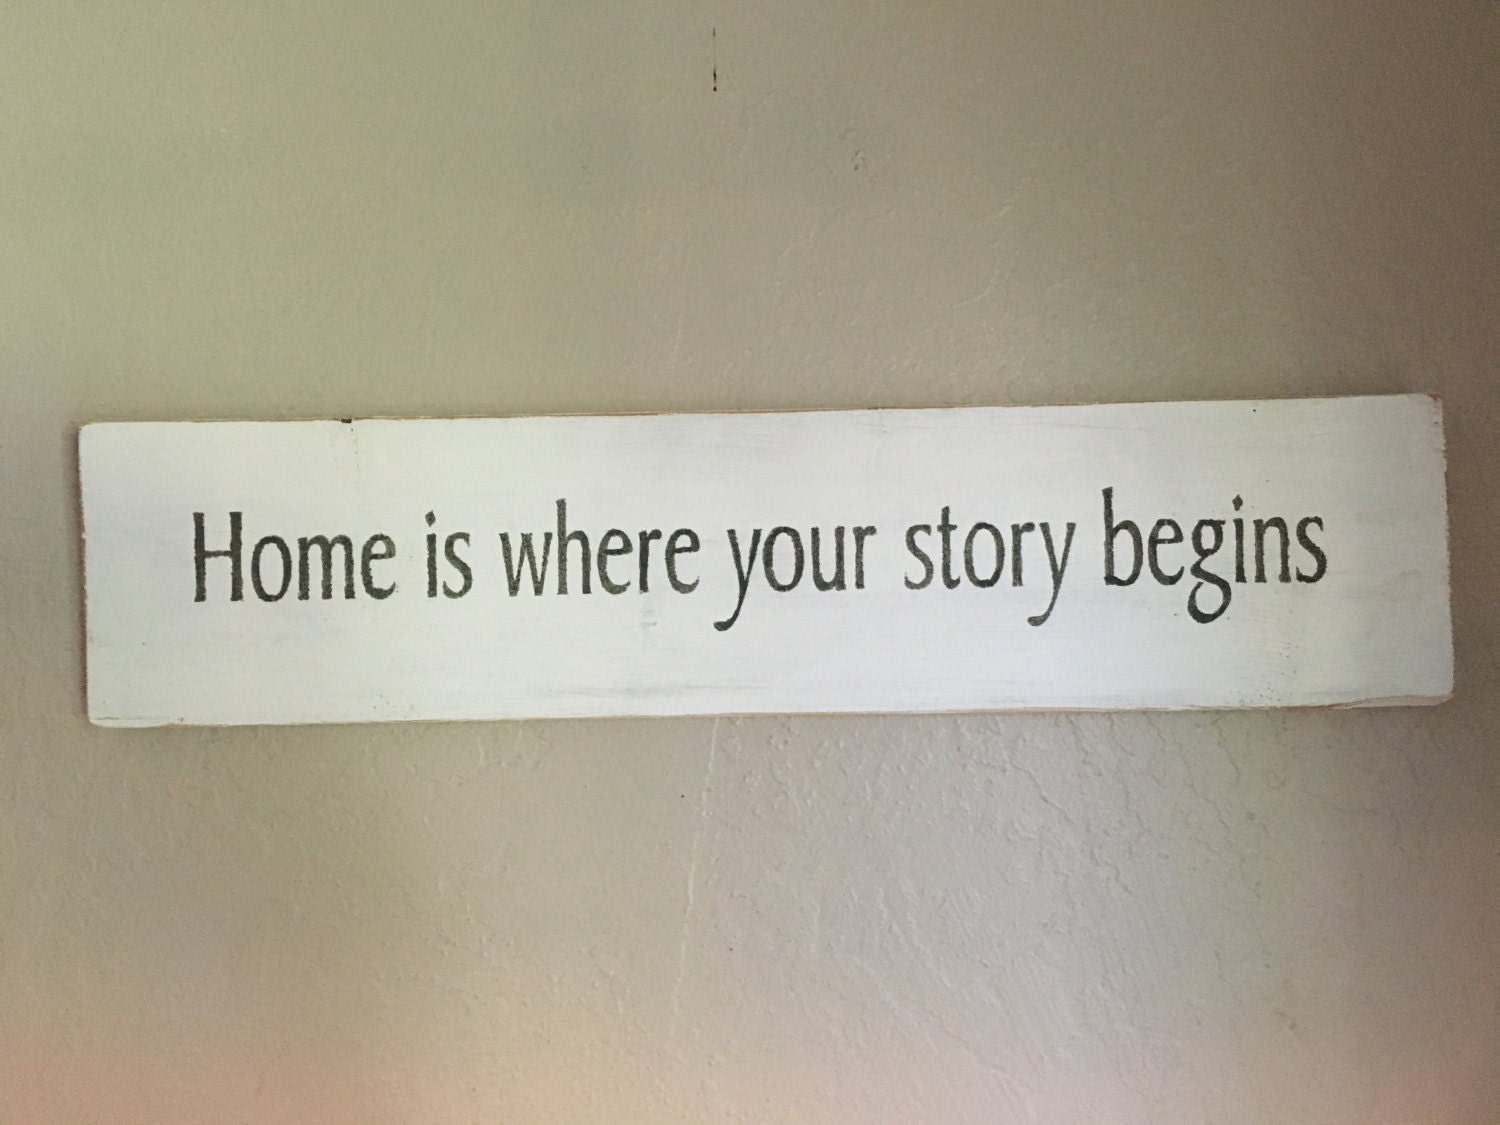 Home is where your story begins SIGN by RusticSignsEtc on Etsy